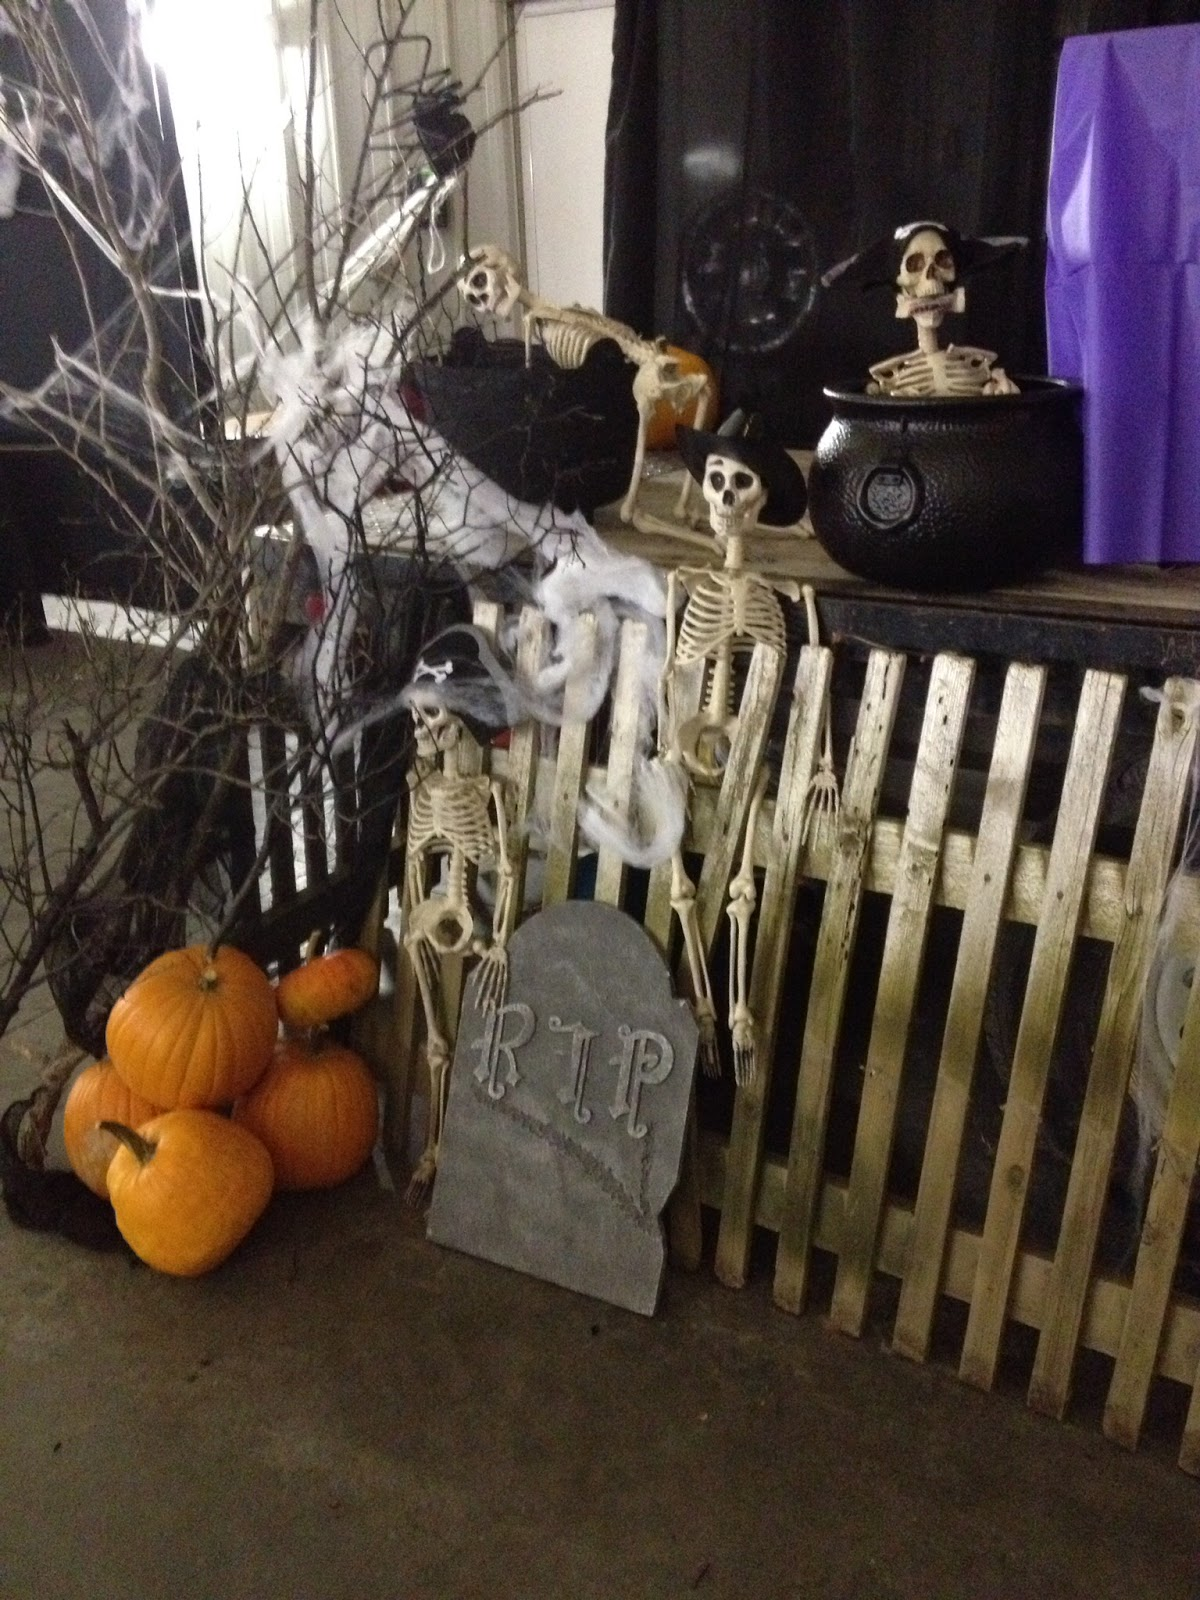 Stage for community social party for Halloween